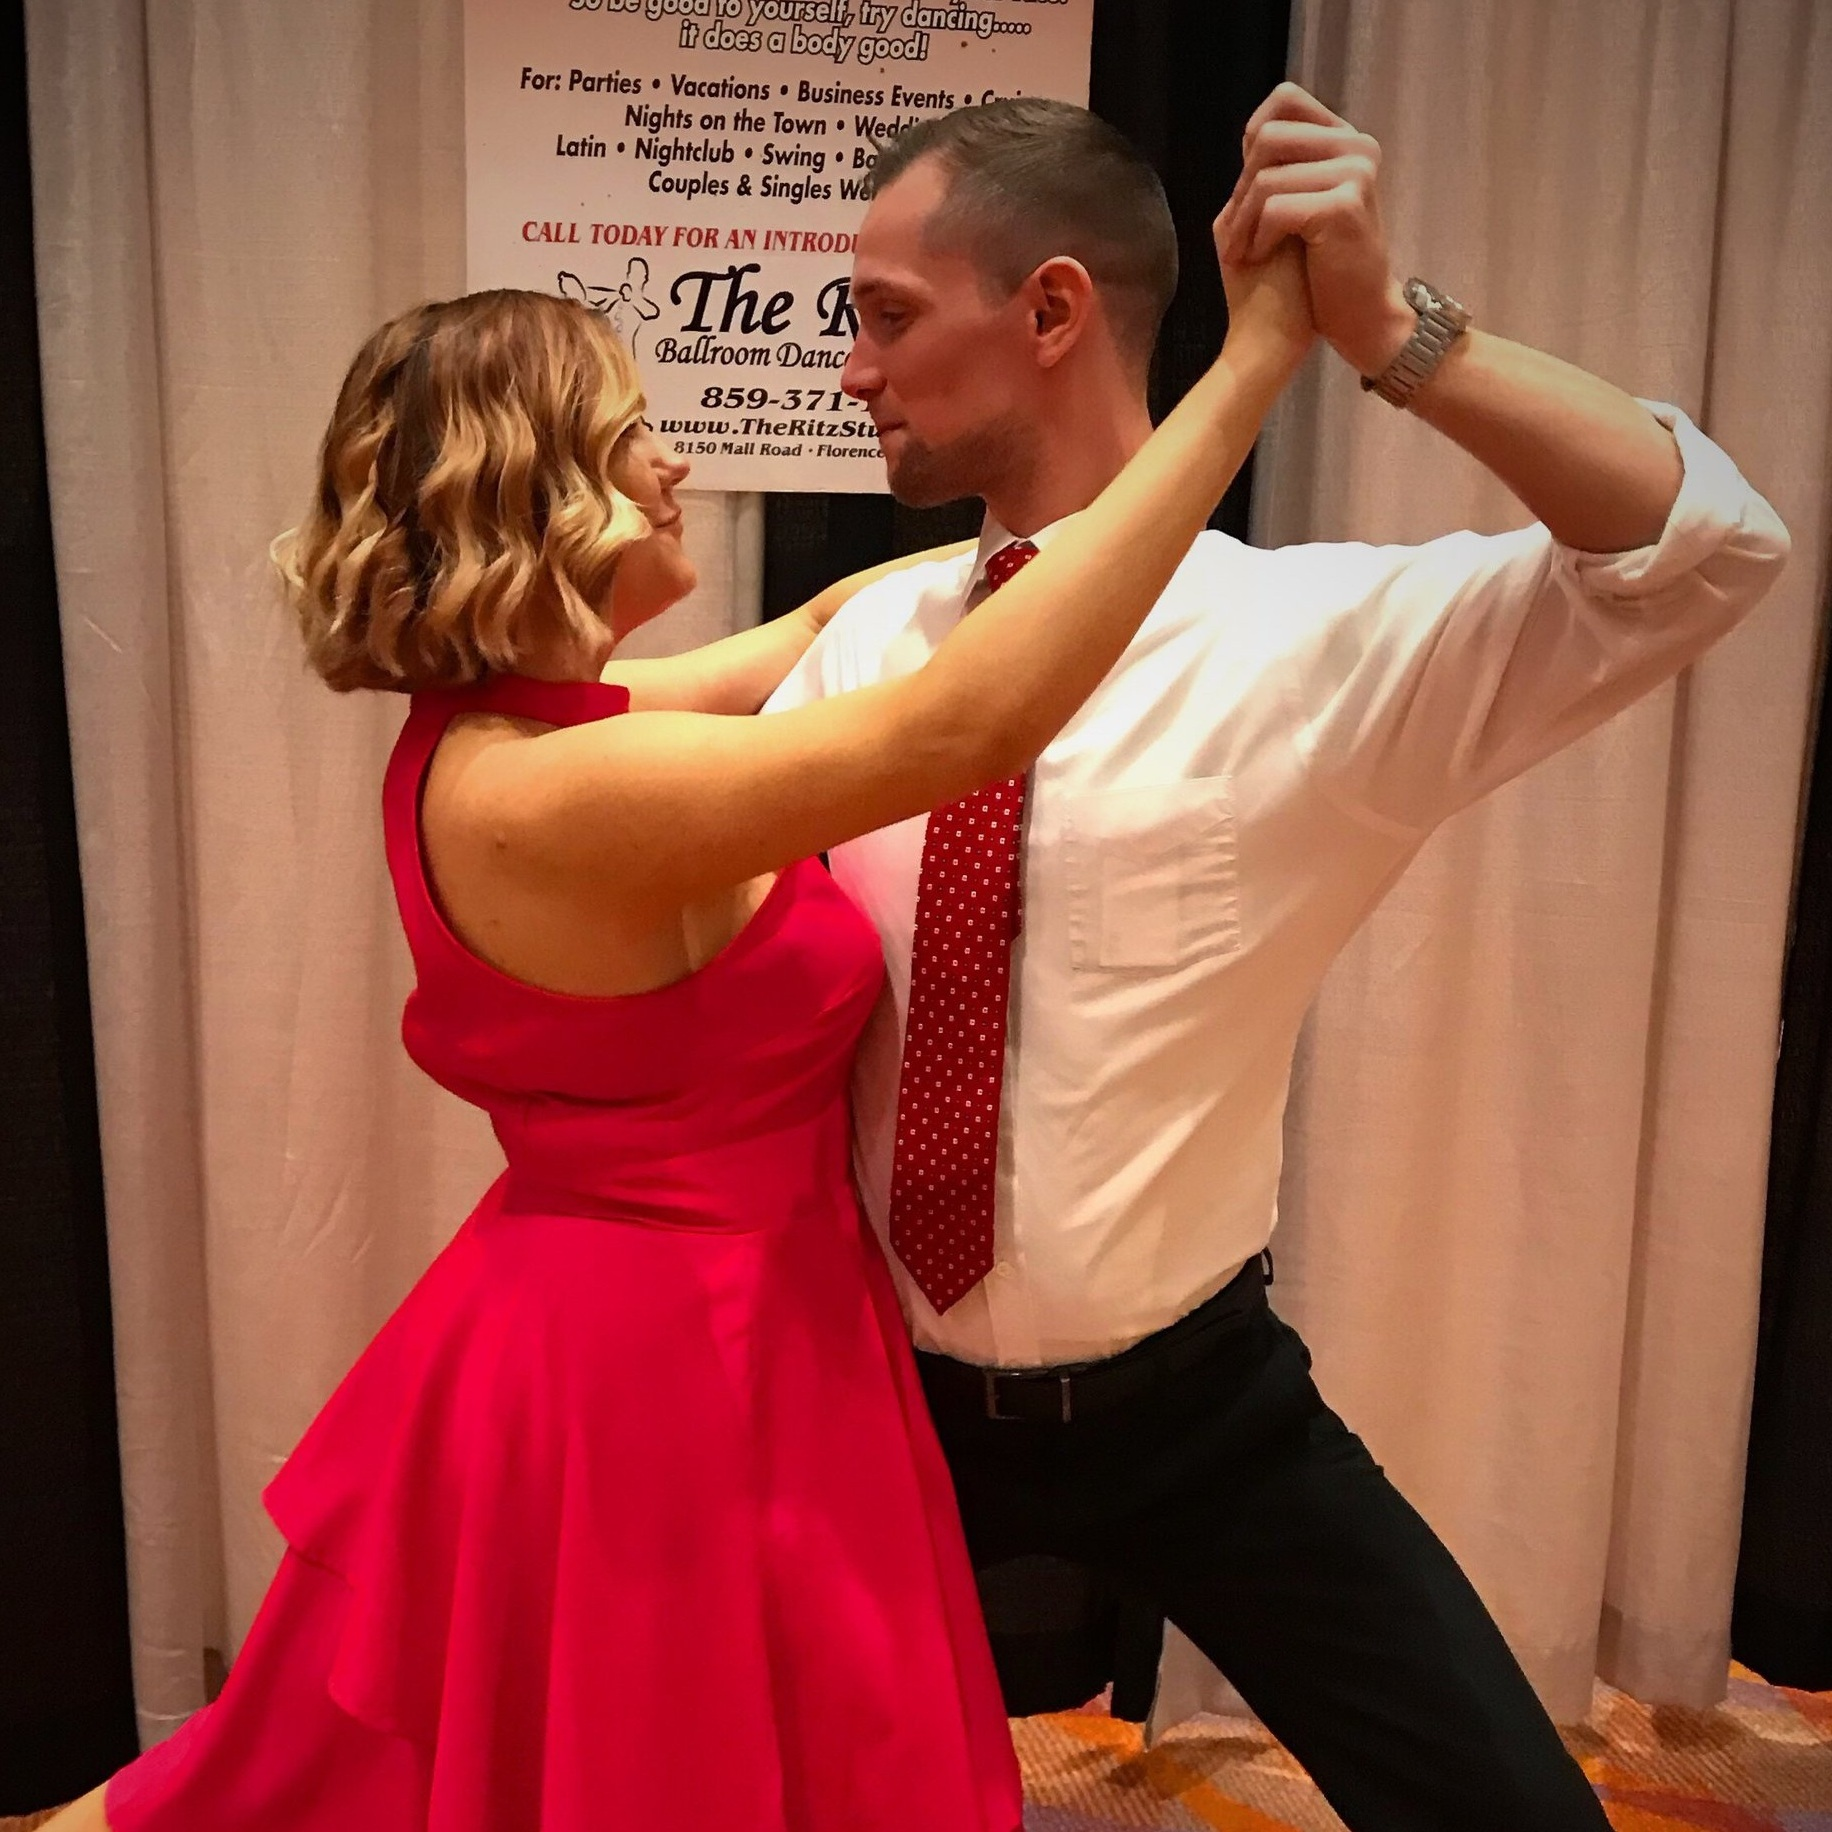 Our Services - No matter your dance experience, age, schedule, or budget we offer classes to fit anyone's dancing needs.Our team is trained and certified with today's most popular Ballroom, Wedding, Latin, Swing, Country, Hip Hop, (and more) dances.